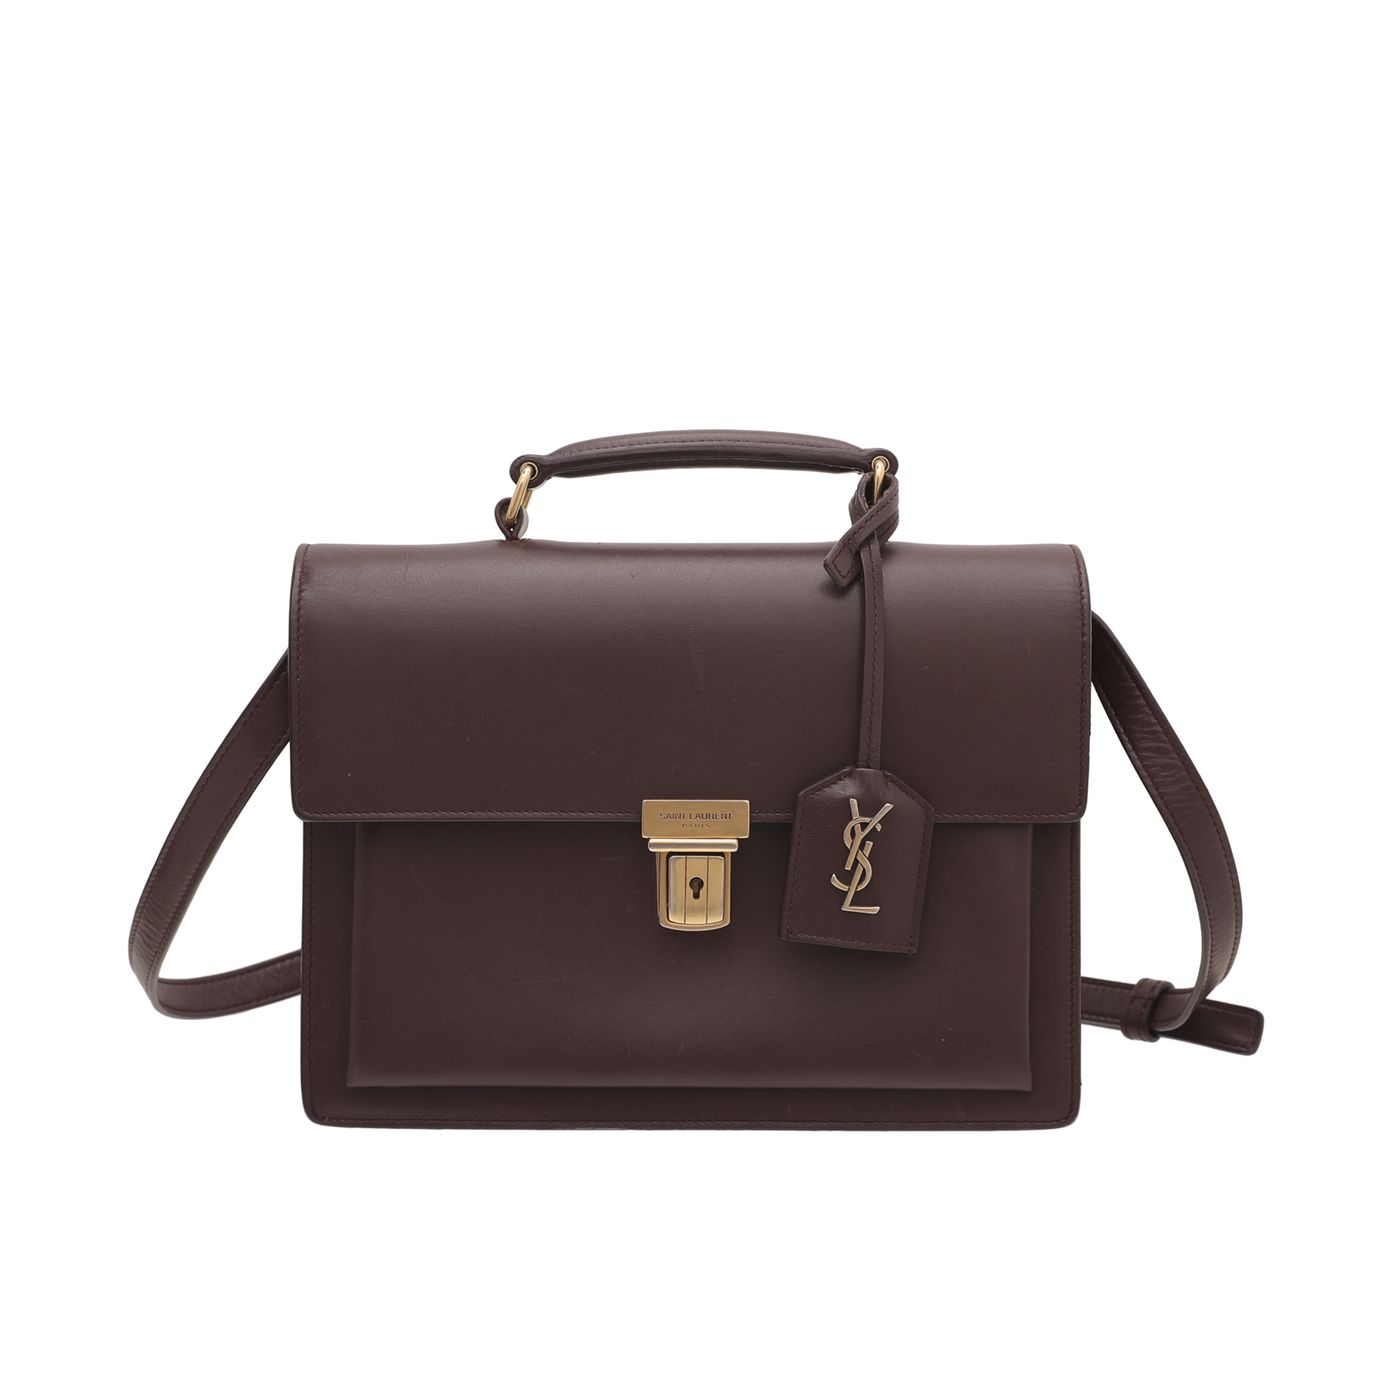 YSL Burgundy High School Satchel Medium Bag